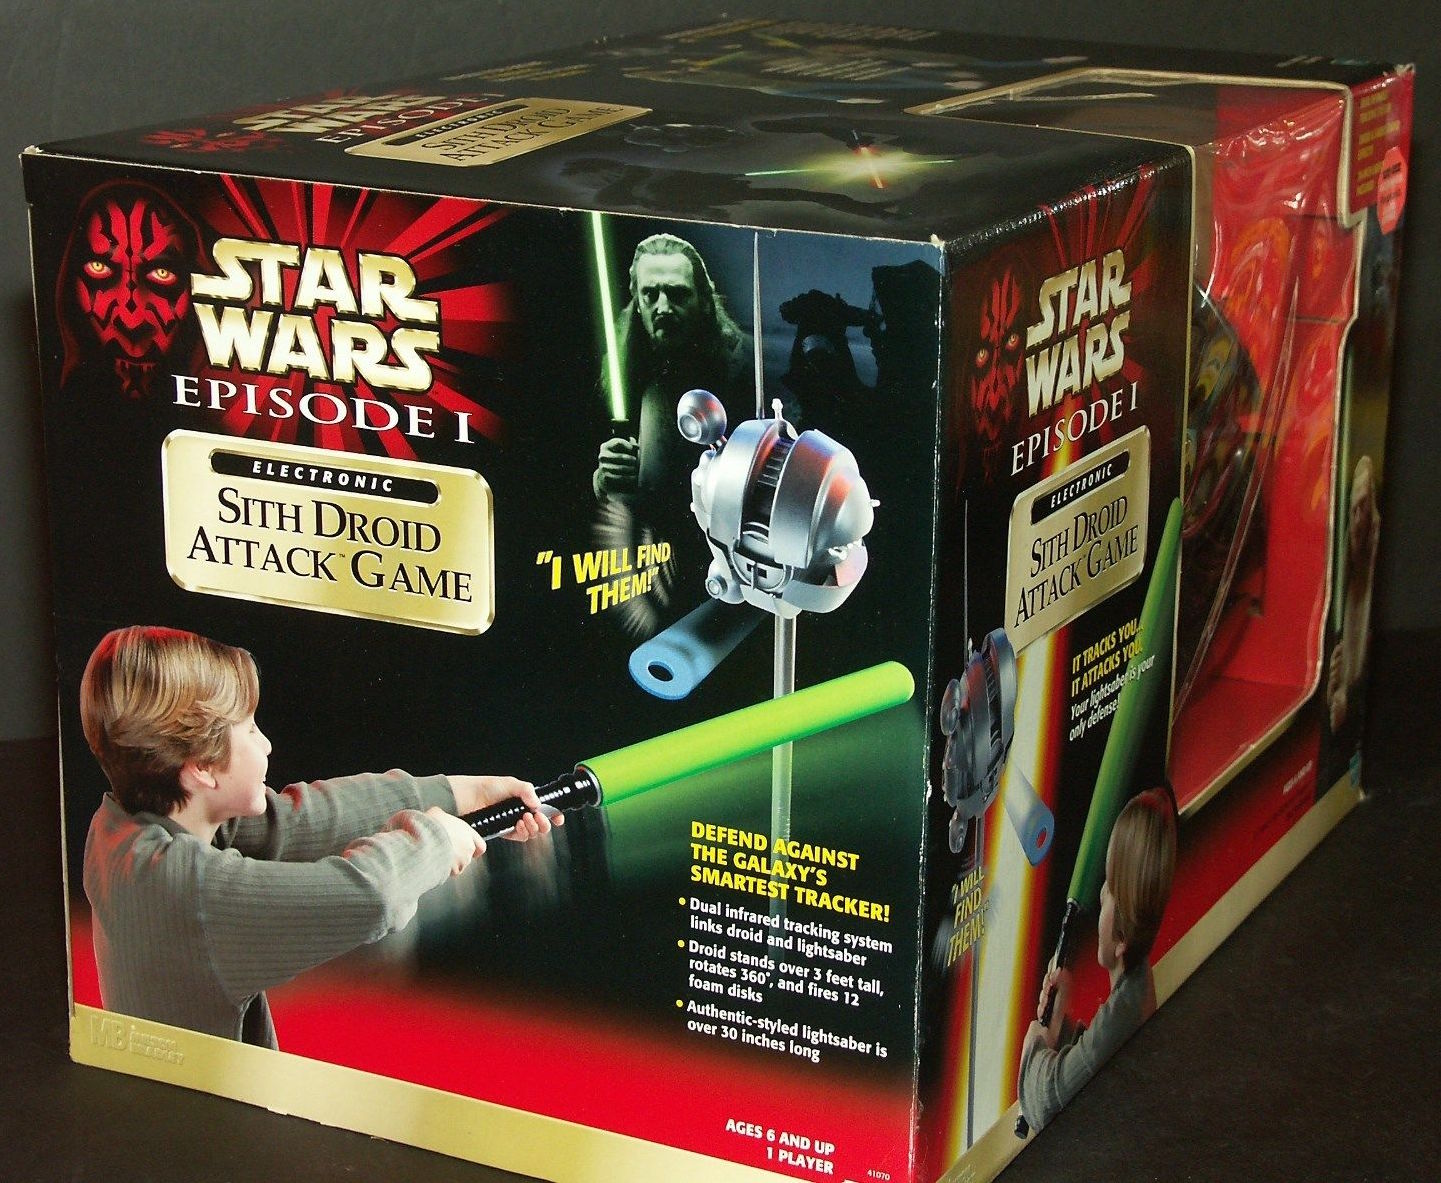 Star Wars SITH Droid Attack Game